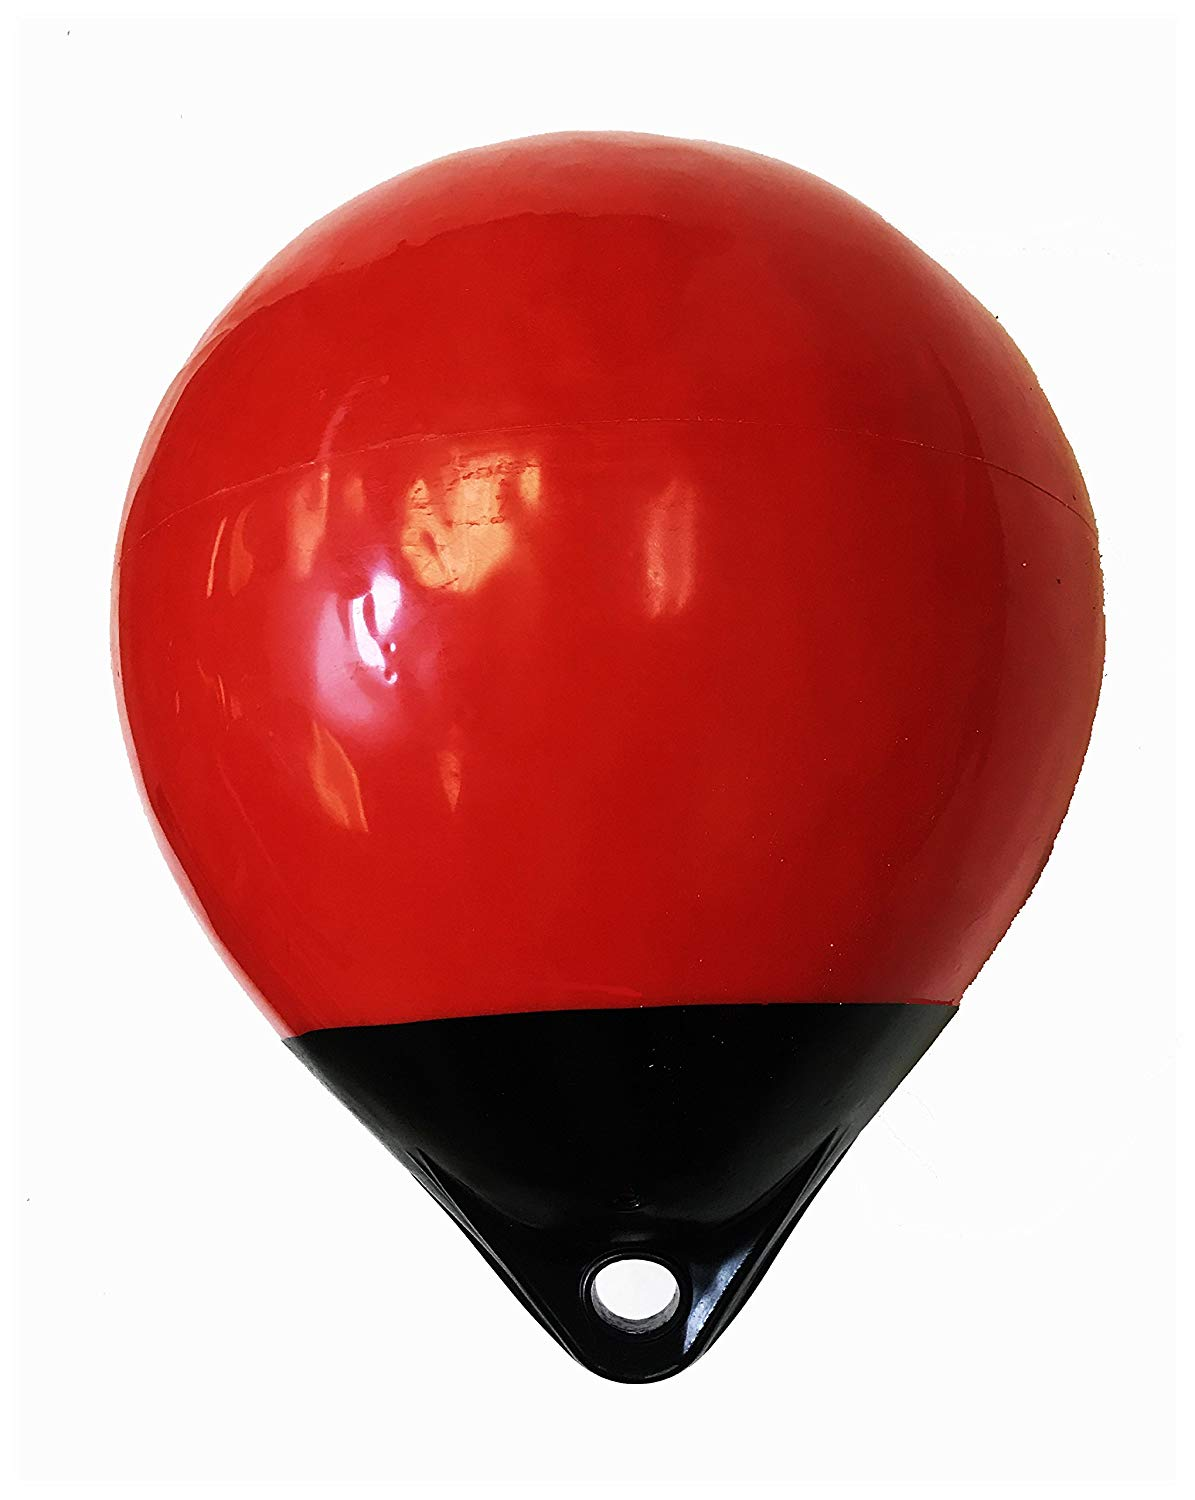 "KUFA 12"" Diameter (Inflated Size: 12"" x 15"") Mark Buoy Mooring Buoy Anchor Lift Buoy A30, Red/Black"